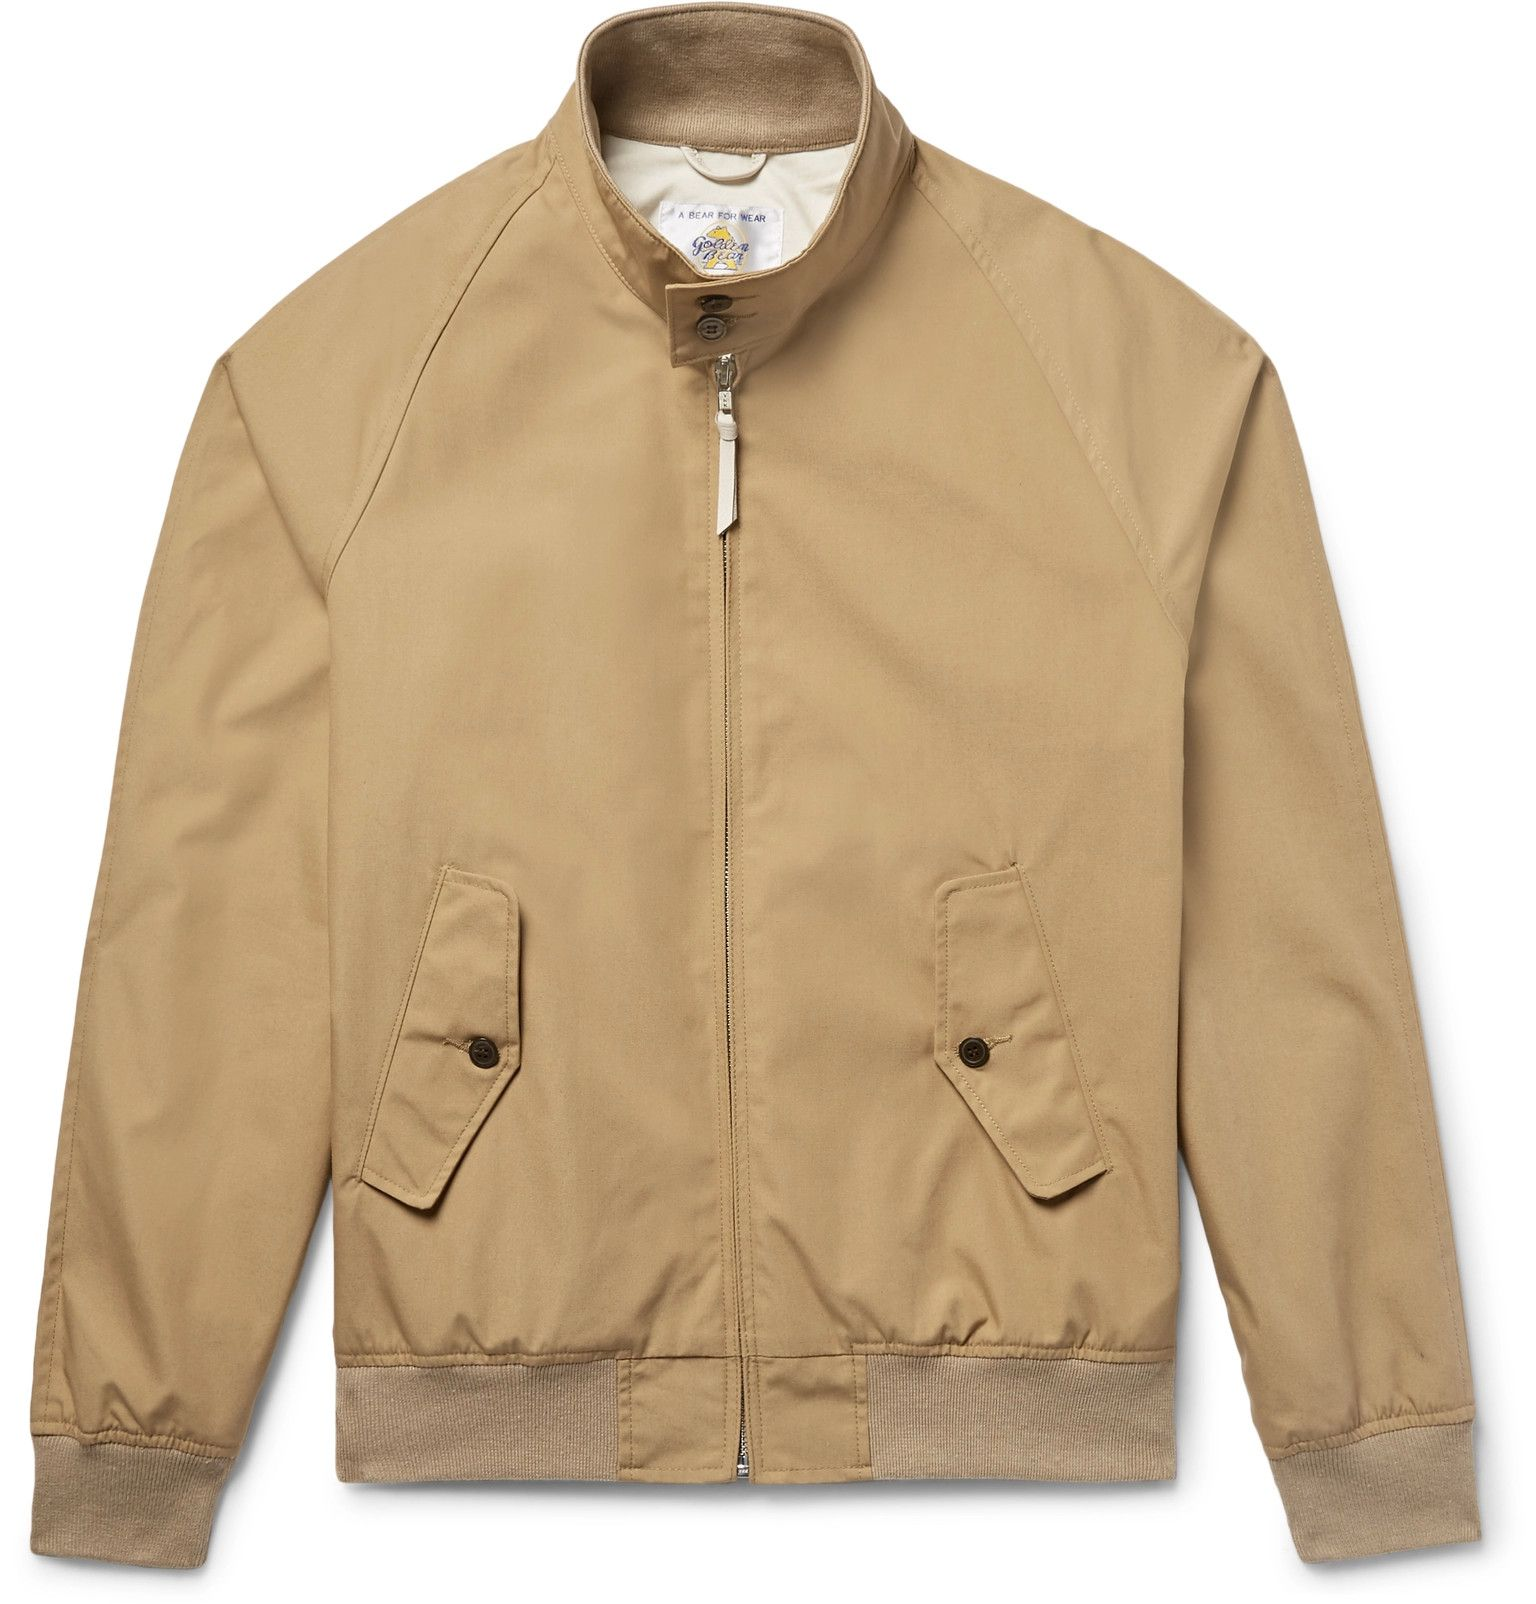 Coats and Jackets for Men | Designer Menswear. GOLDEN BEAR x Mr Porter Poplin  Bomber Jacket